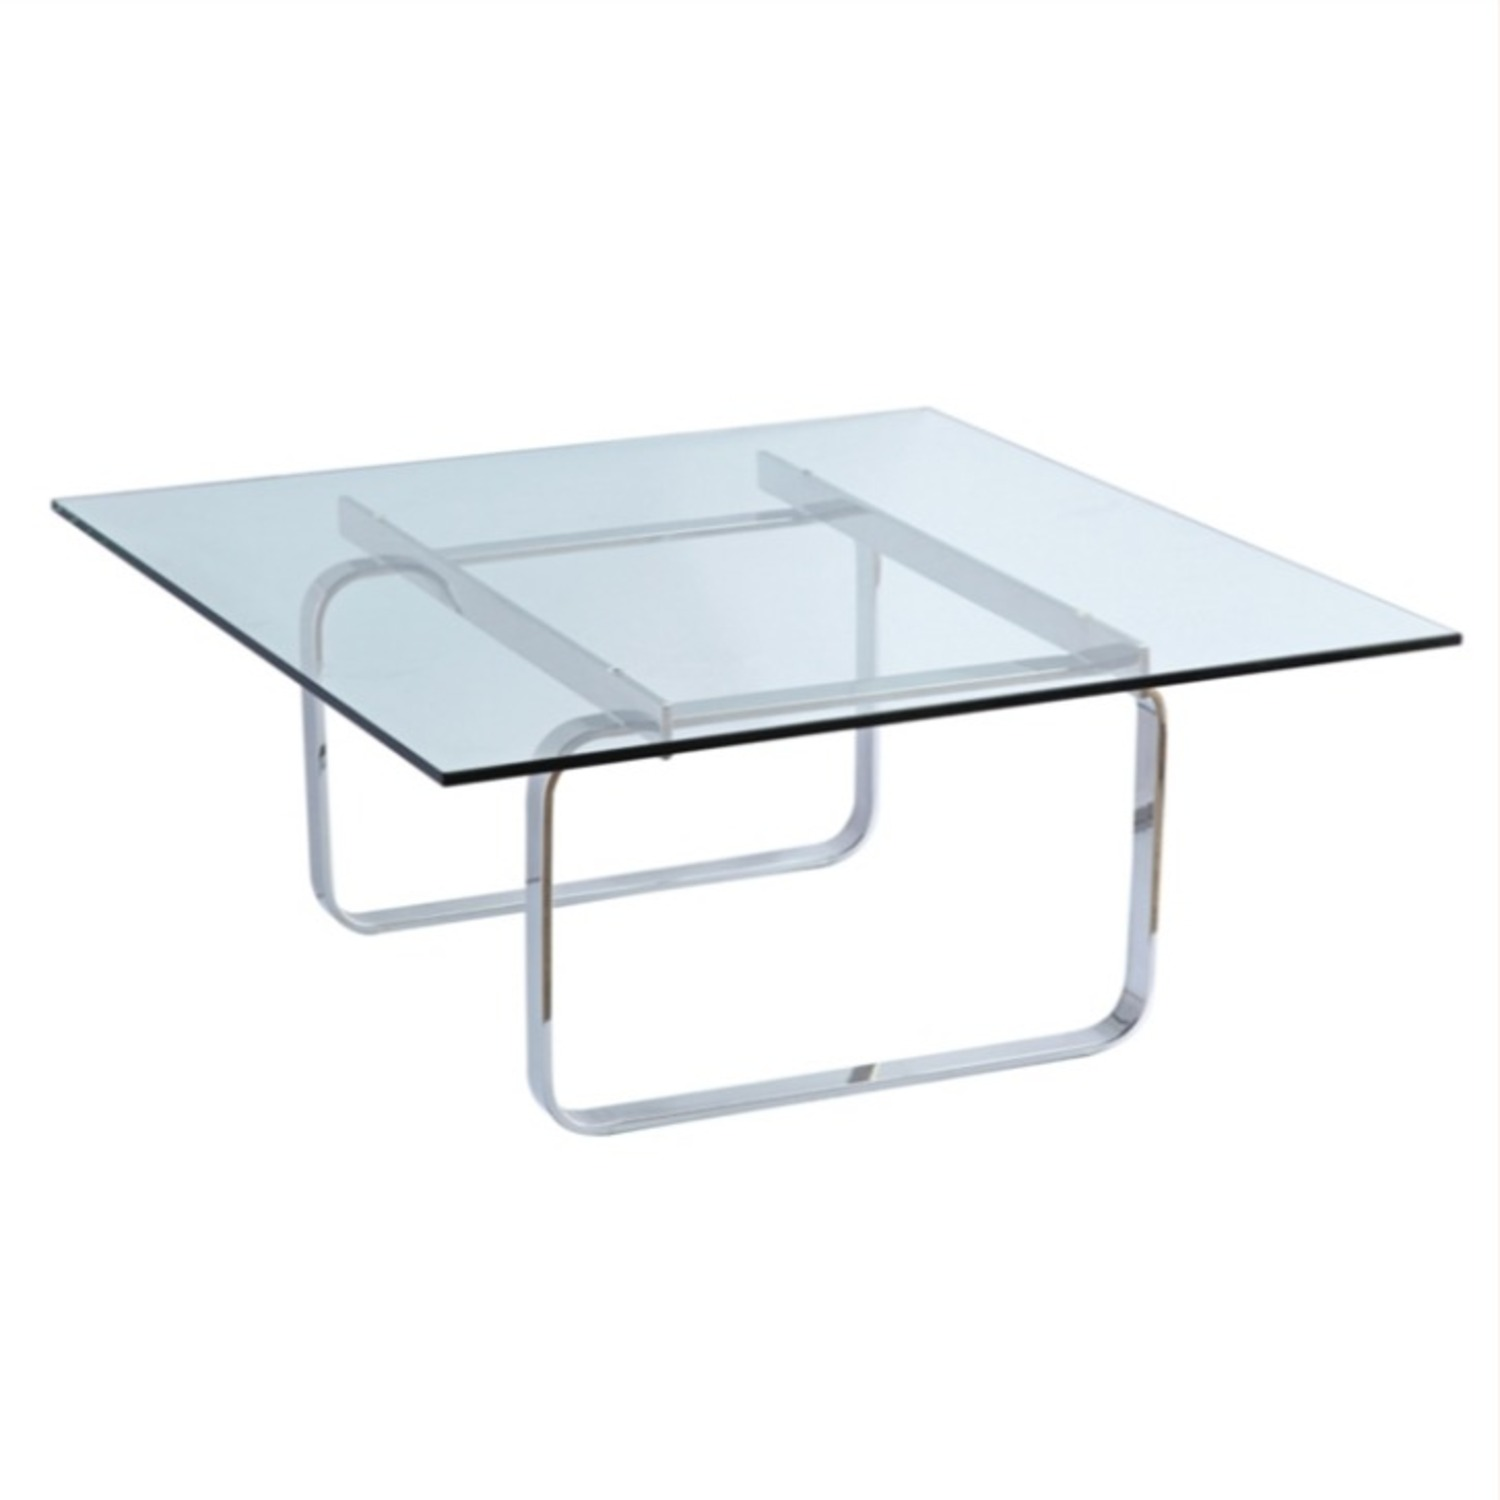 Coffee Table In Clear Stainless Steel - image-0